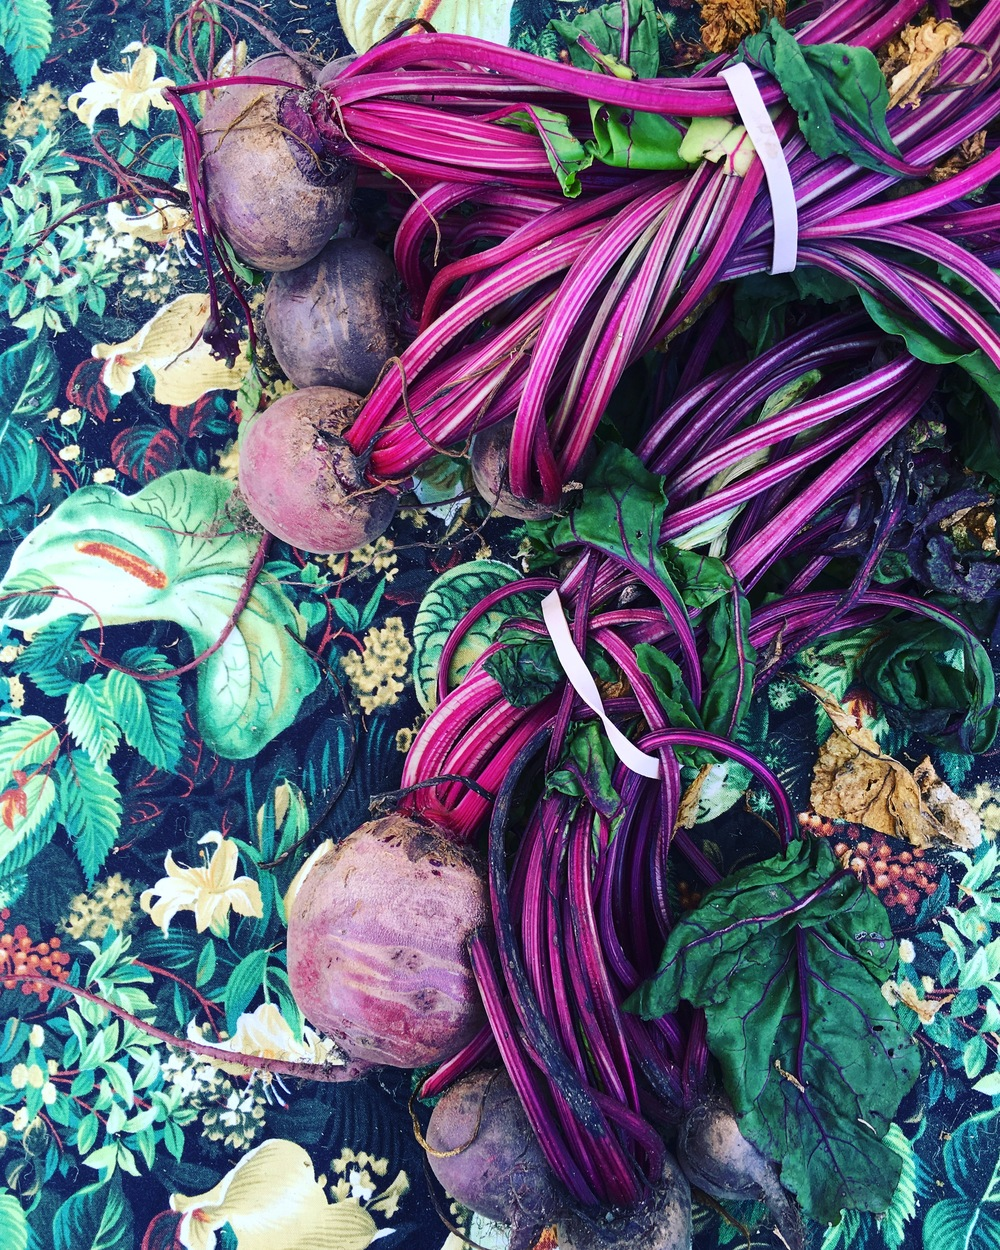 Hit that perfect beet!! I love nothing more..nothing! well a few things but food wise..they're all roasted and ready to go..dash of syrupy aged balsamic! Heaven!